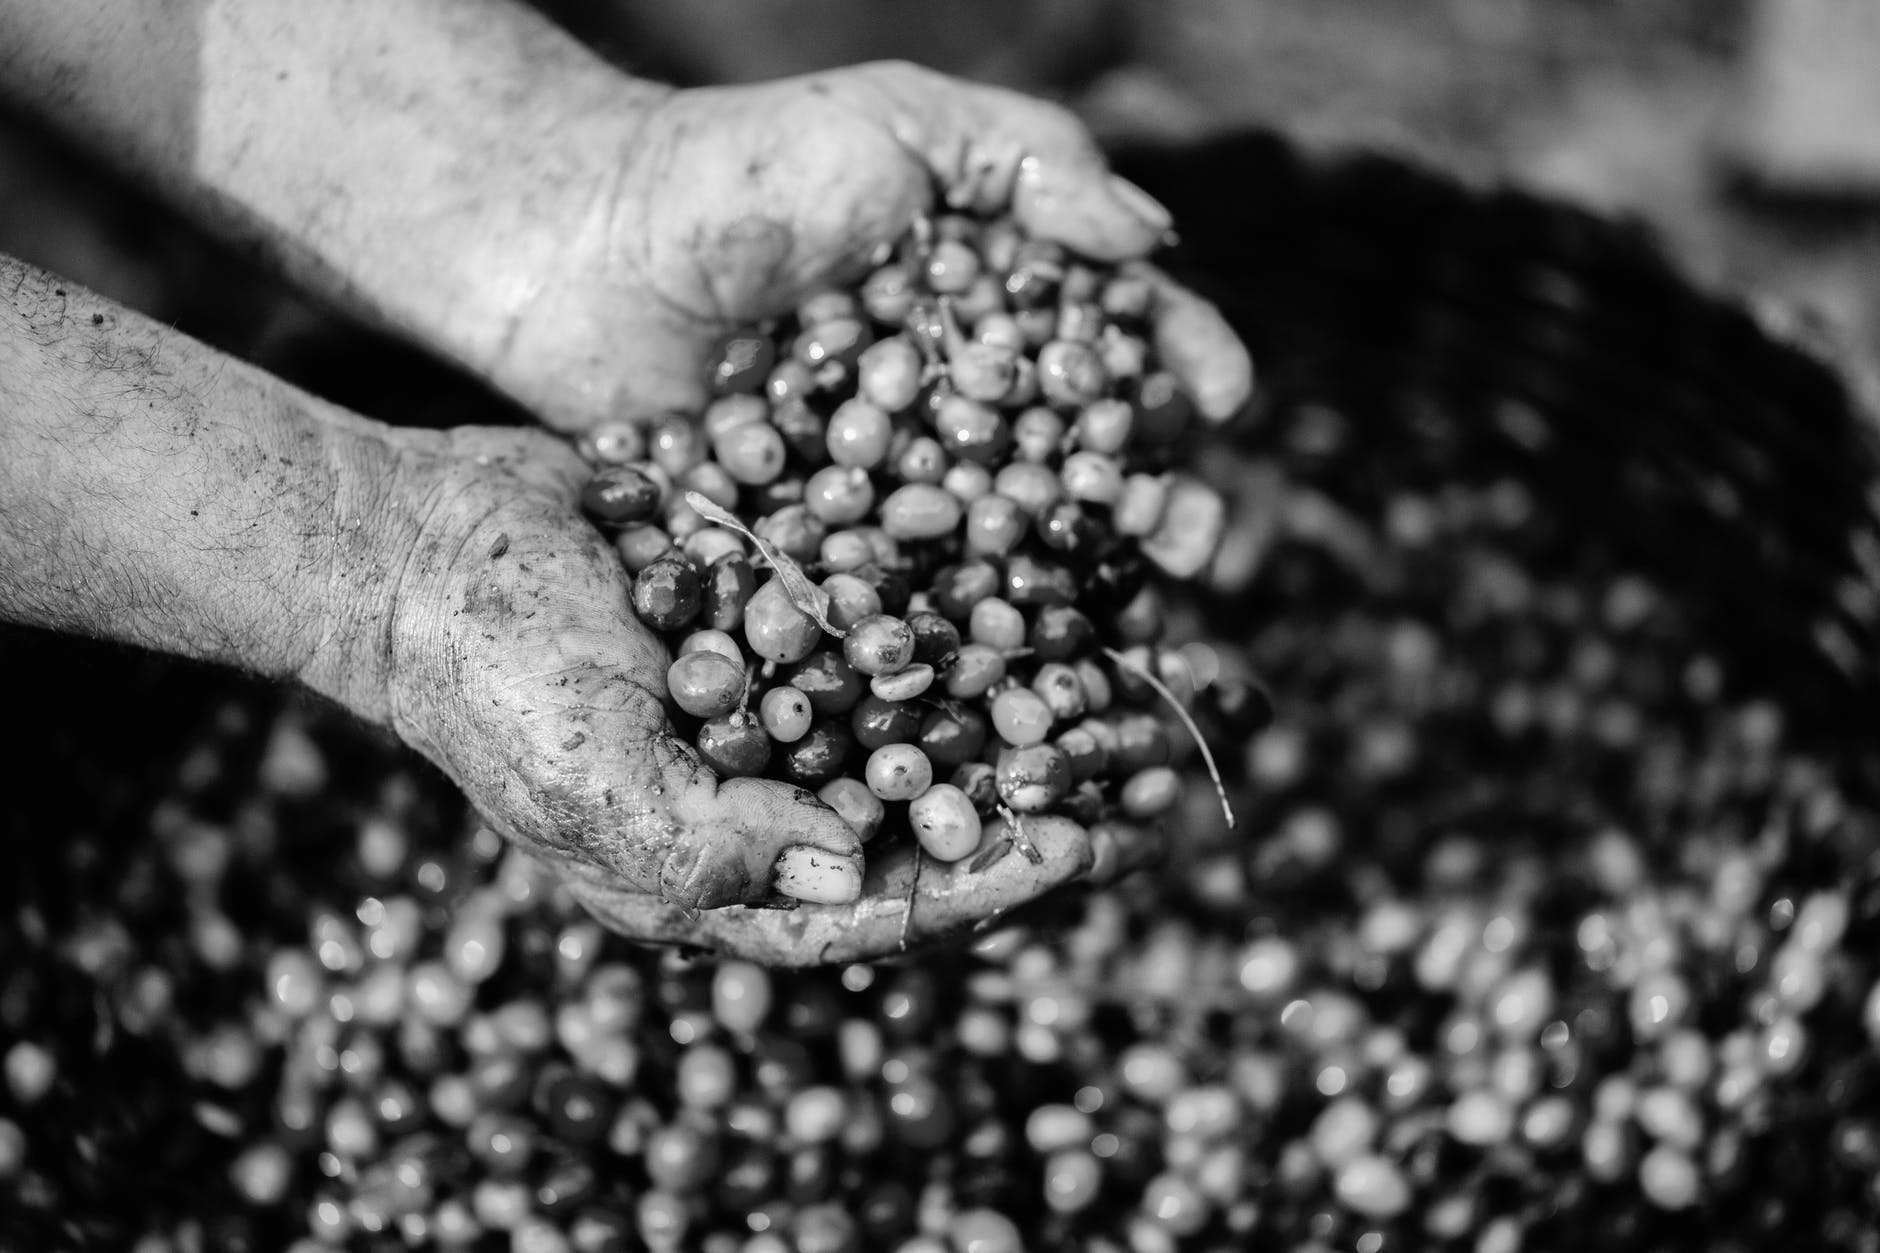 Two hands holding freshly picked coffee cherries